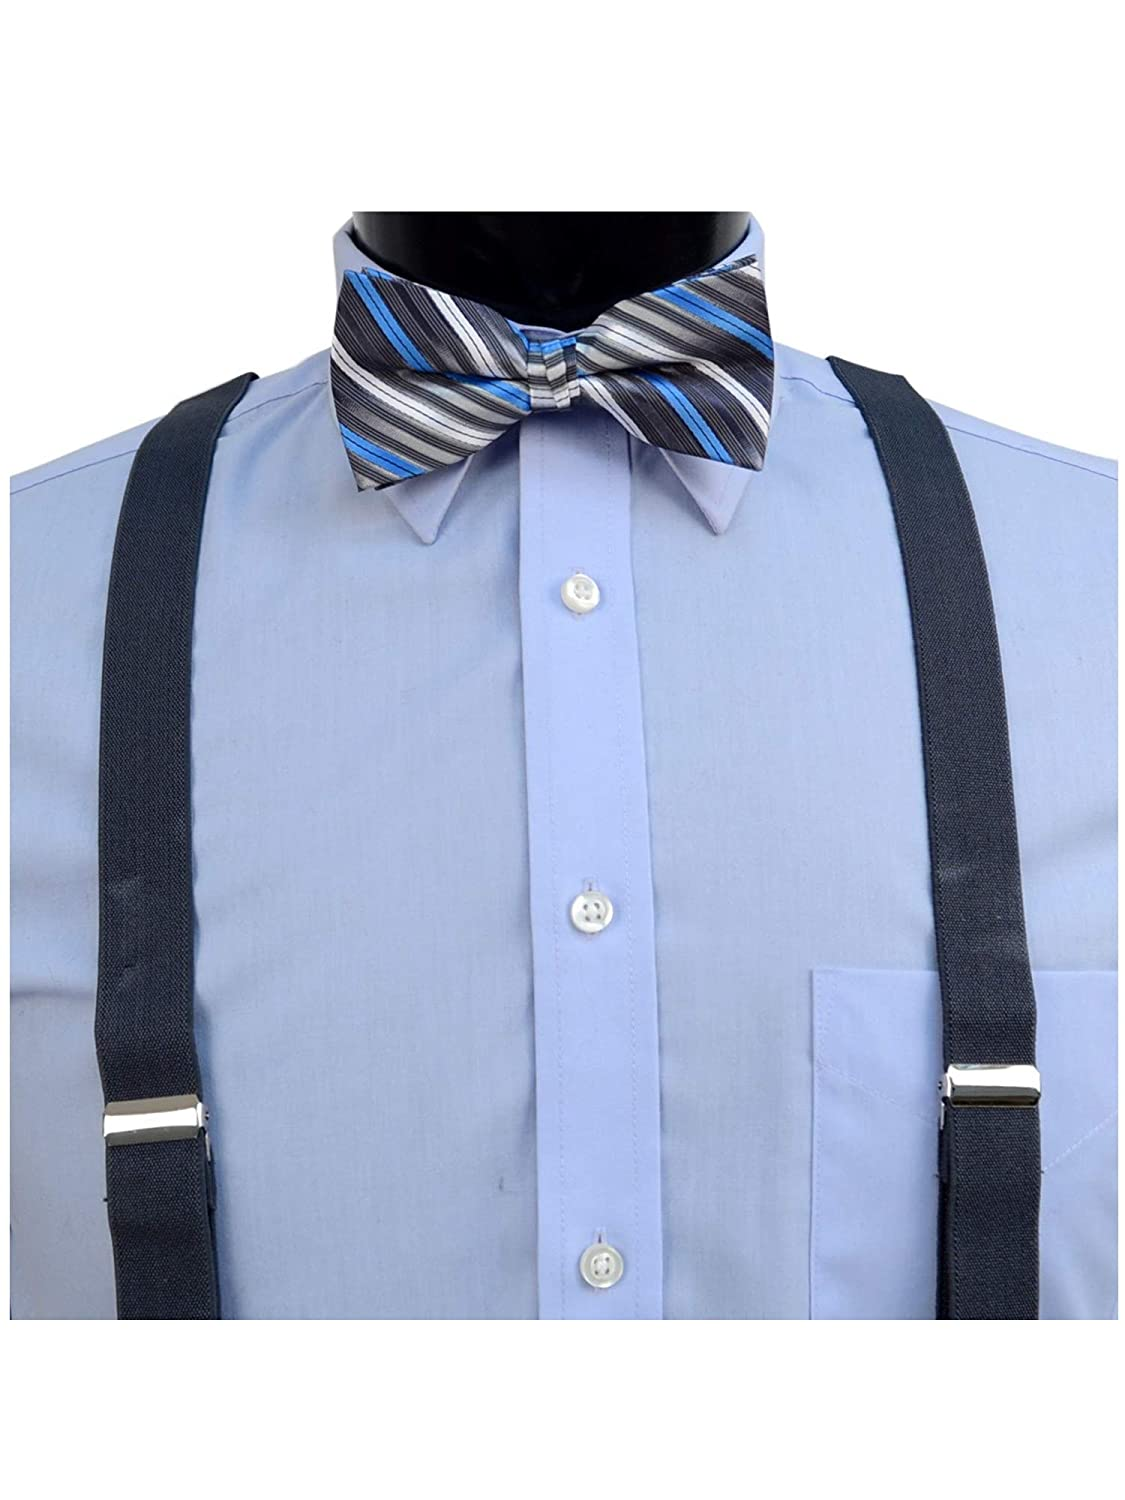 Bow Tie /& Hanky Sets Mens Charcoal 3 PC Clip-on Suspenders